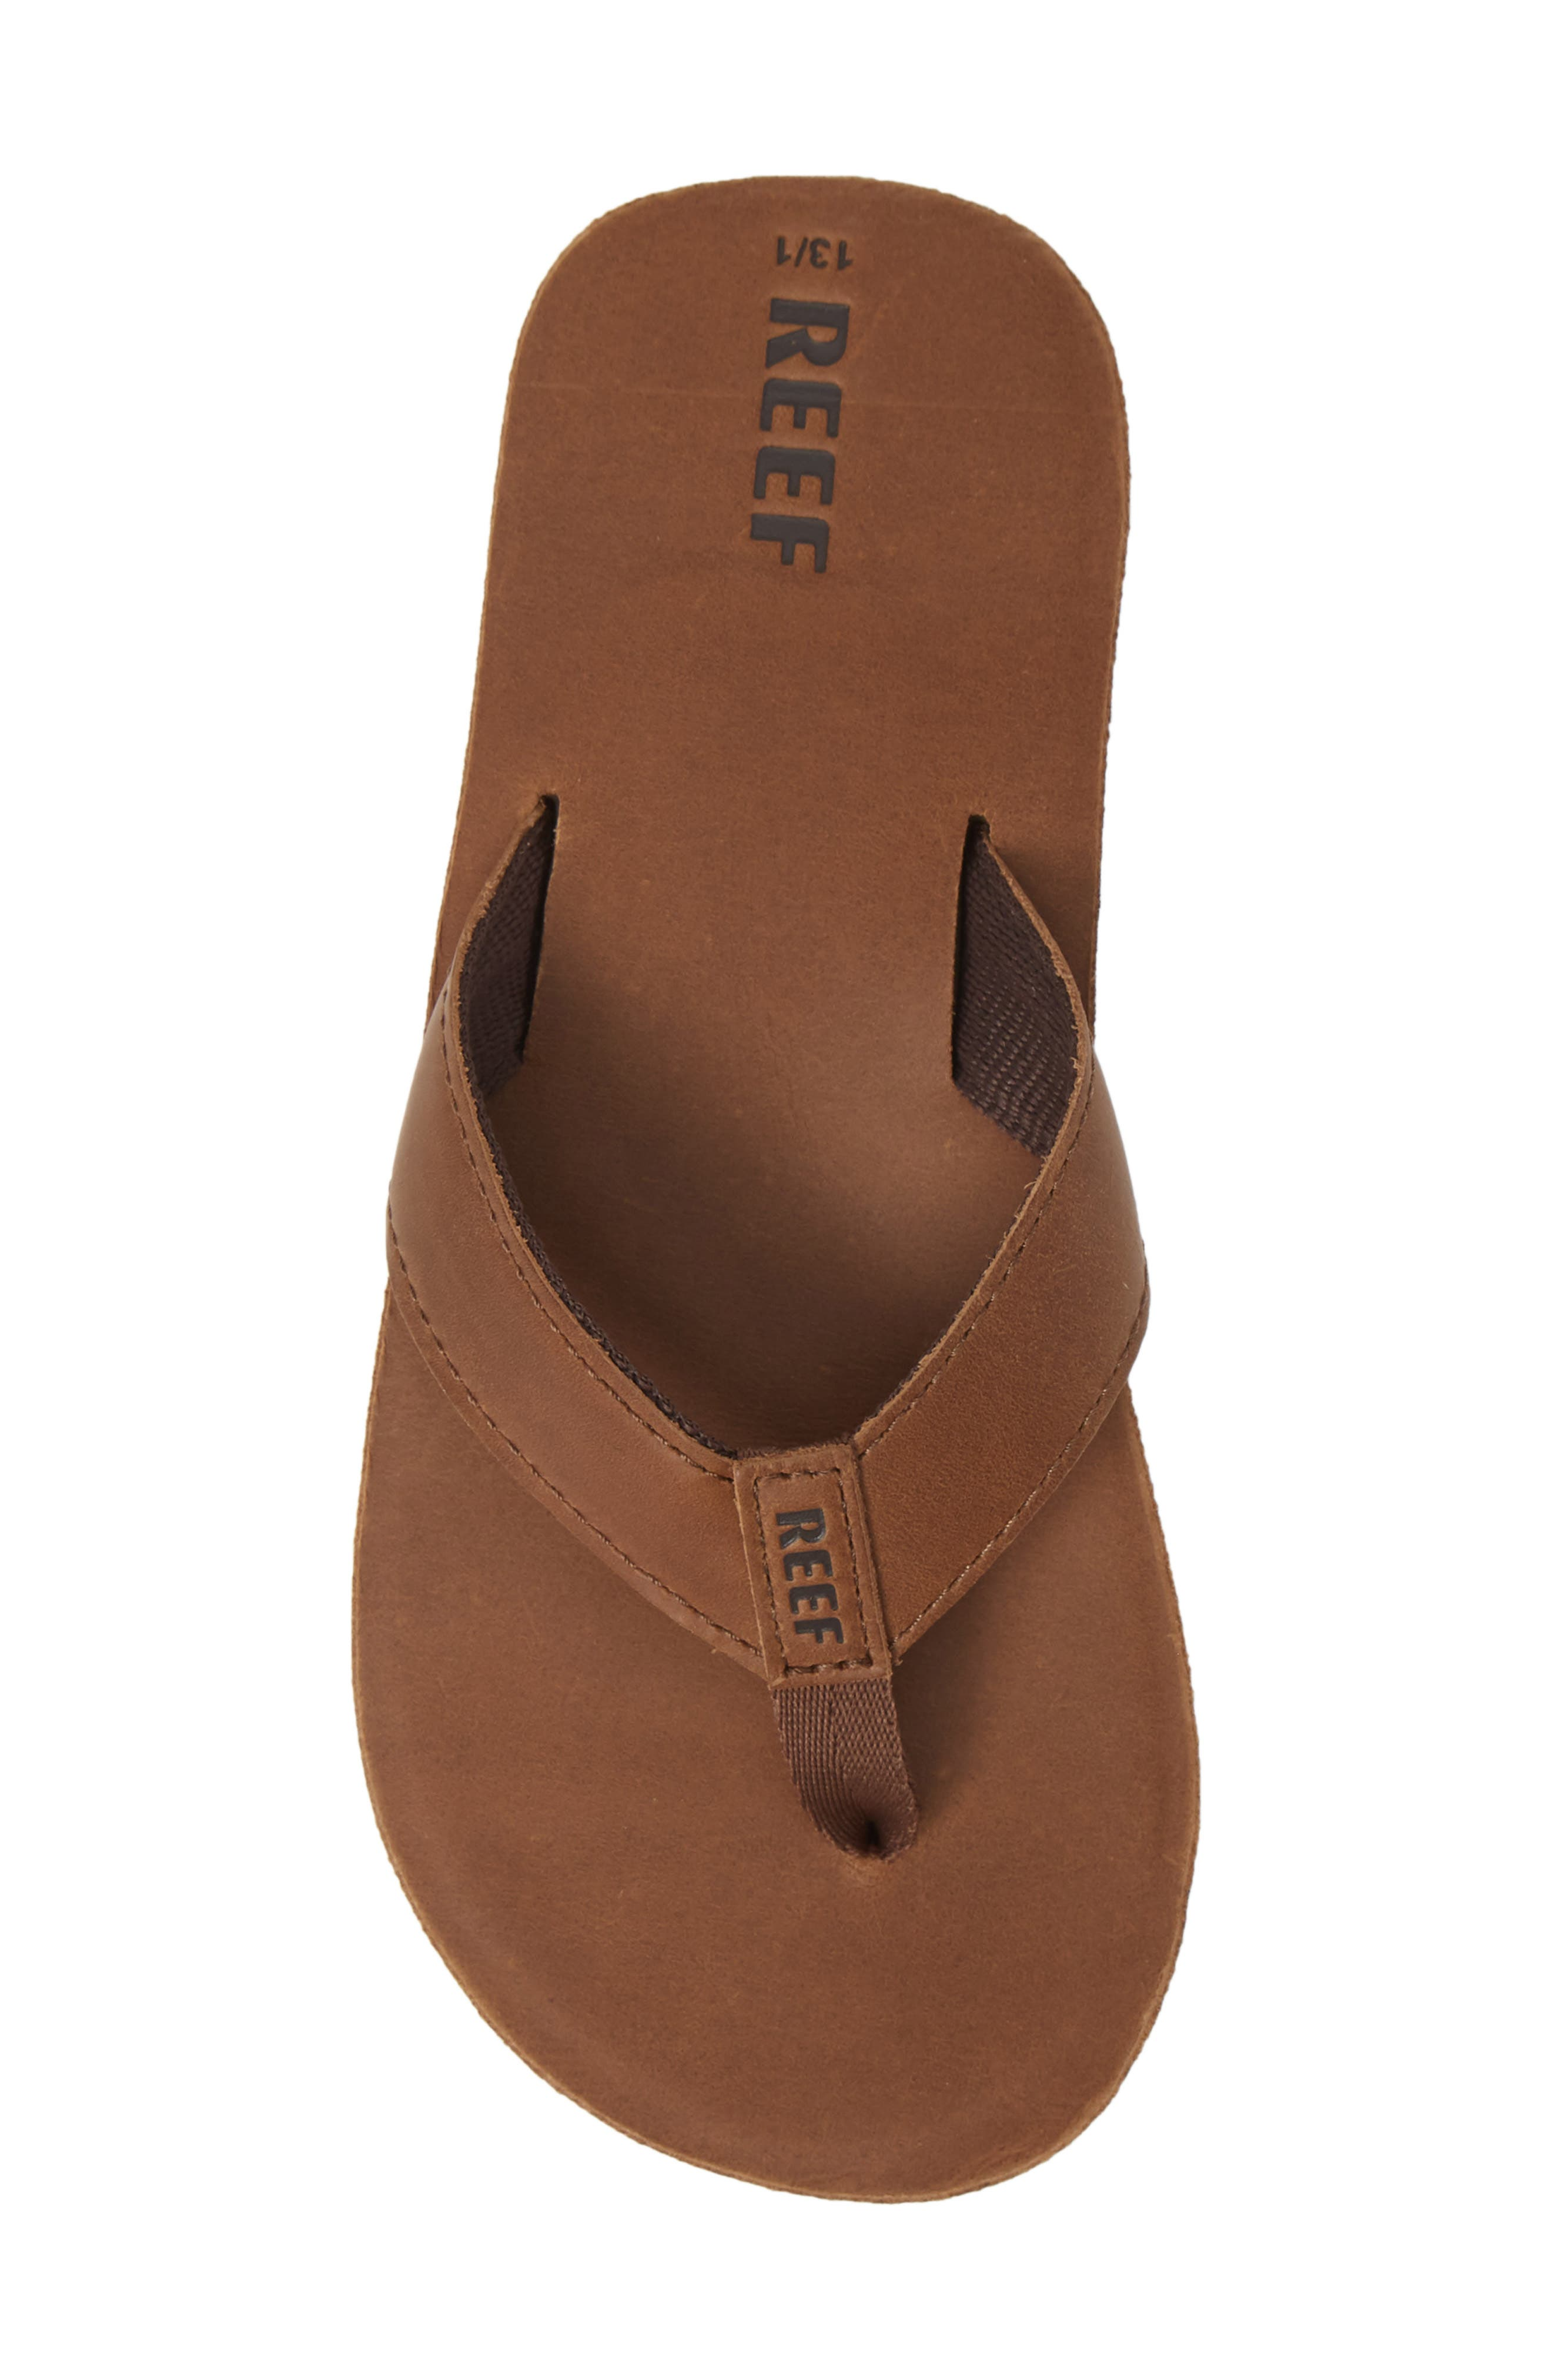 Smoothy Flip Flop,                             Alternate thumbnail 5, color,                             BRONZE BROWN